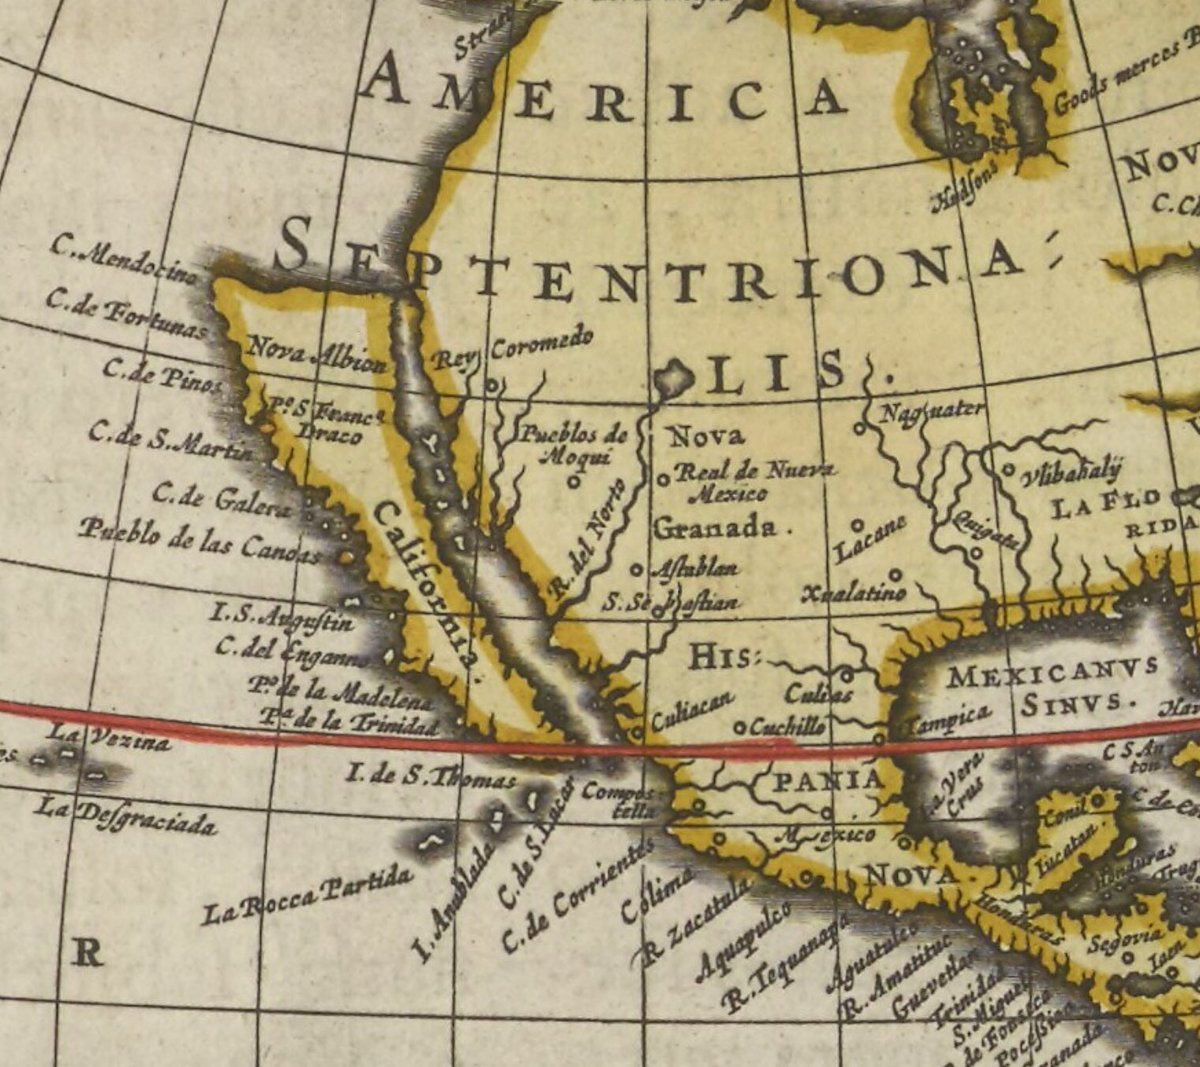 Nls map collections on twitter adventworldmap day 3 blaeus 1665 blaeus 1665 world map shows california as an island this was common it wasnt until the late 18th century after royal decrees and gumiabroncs Gallery